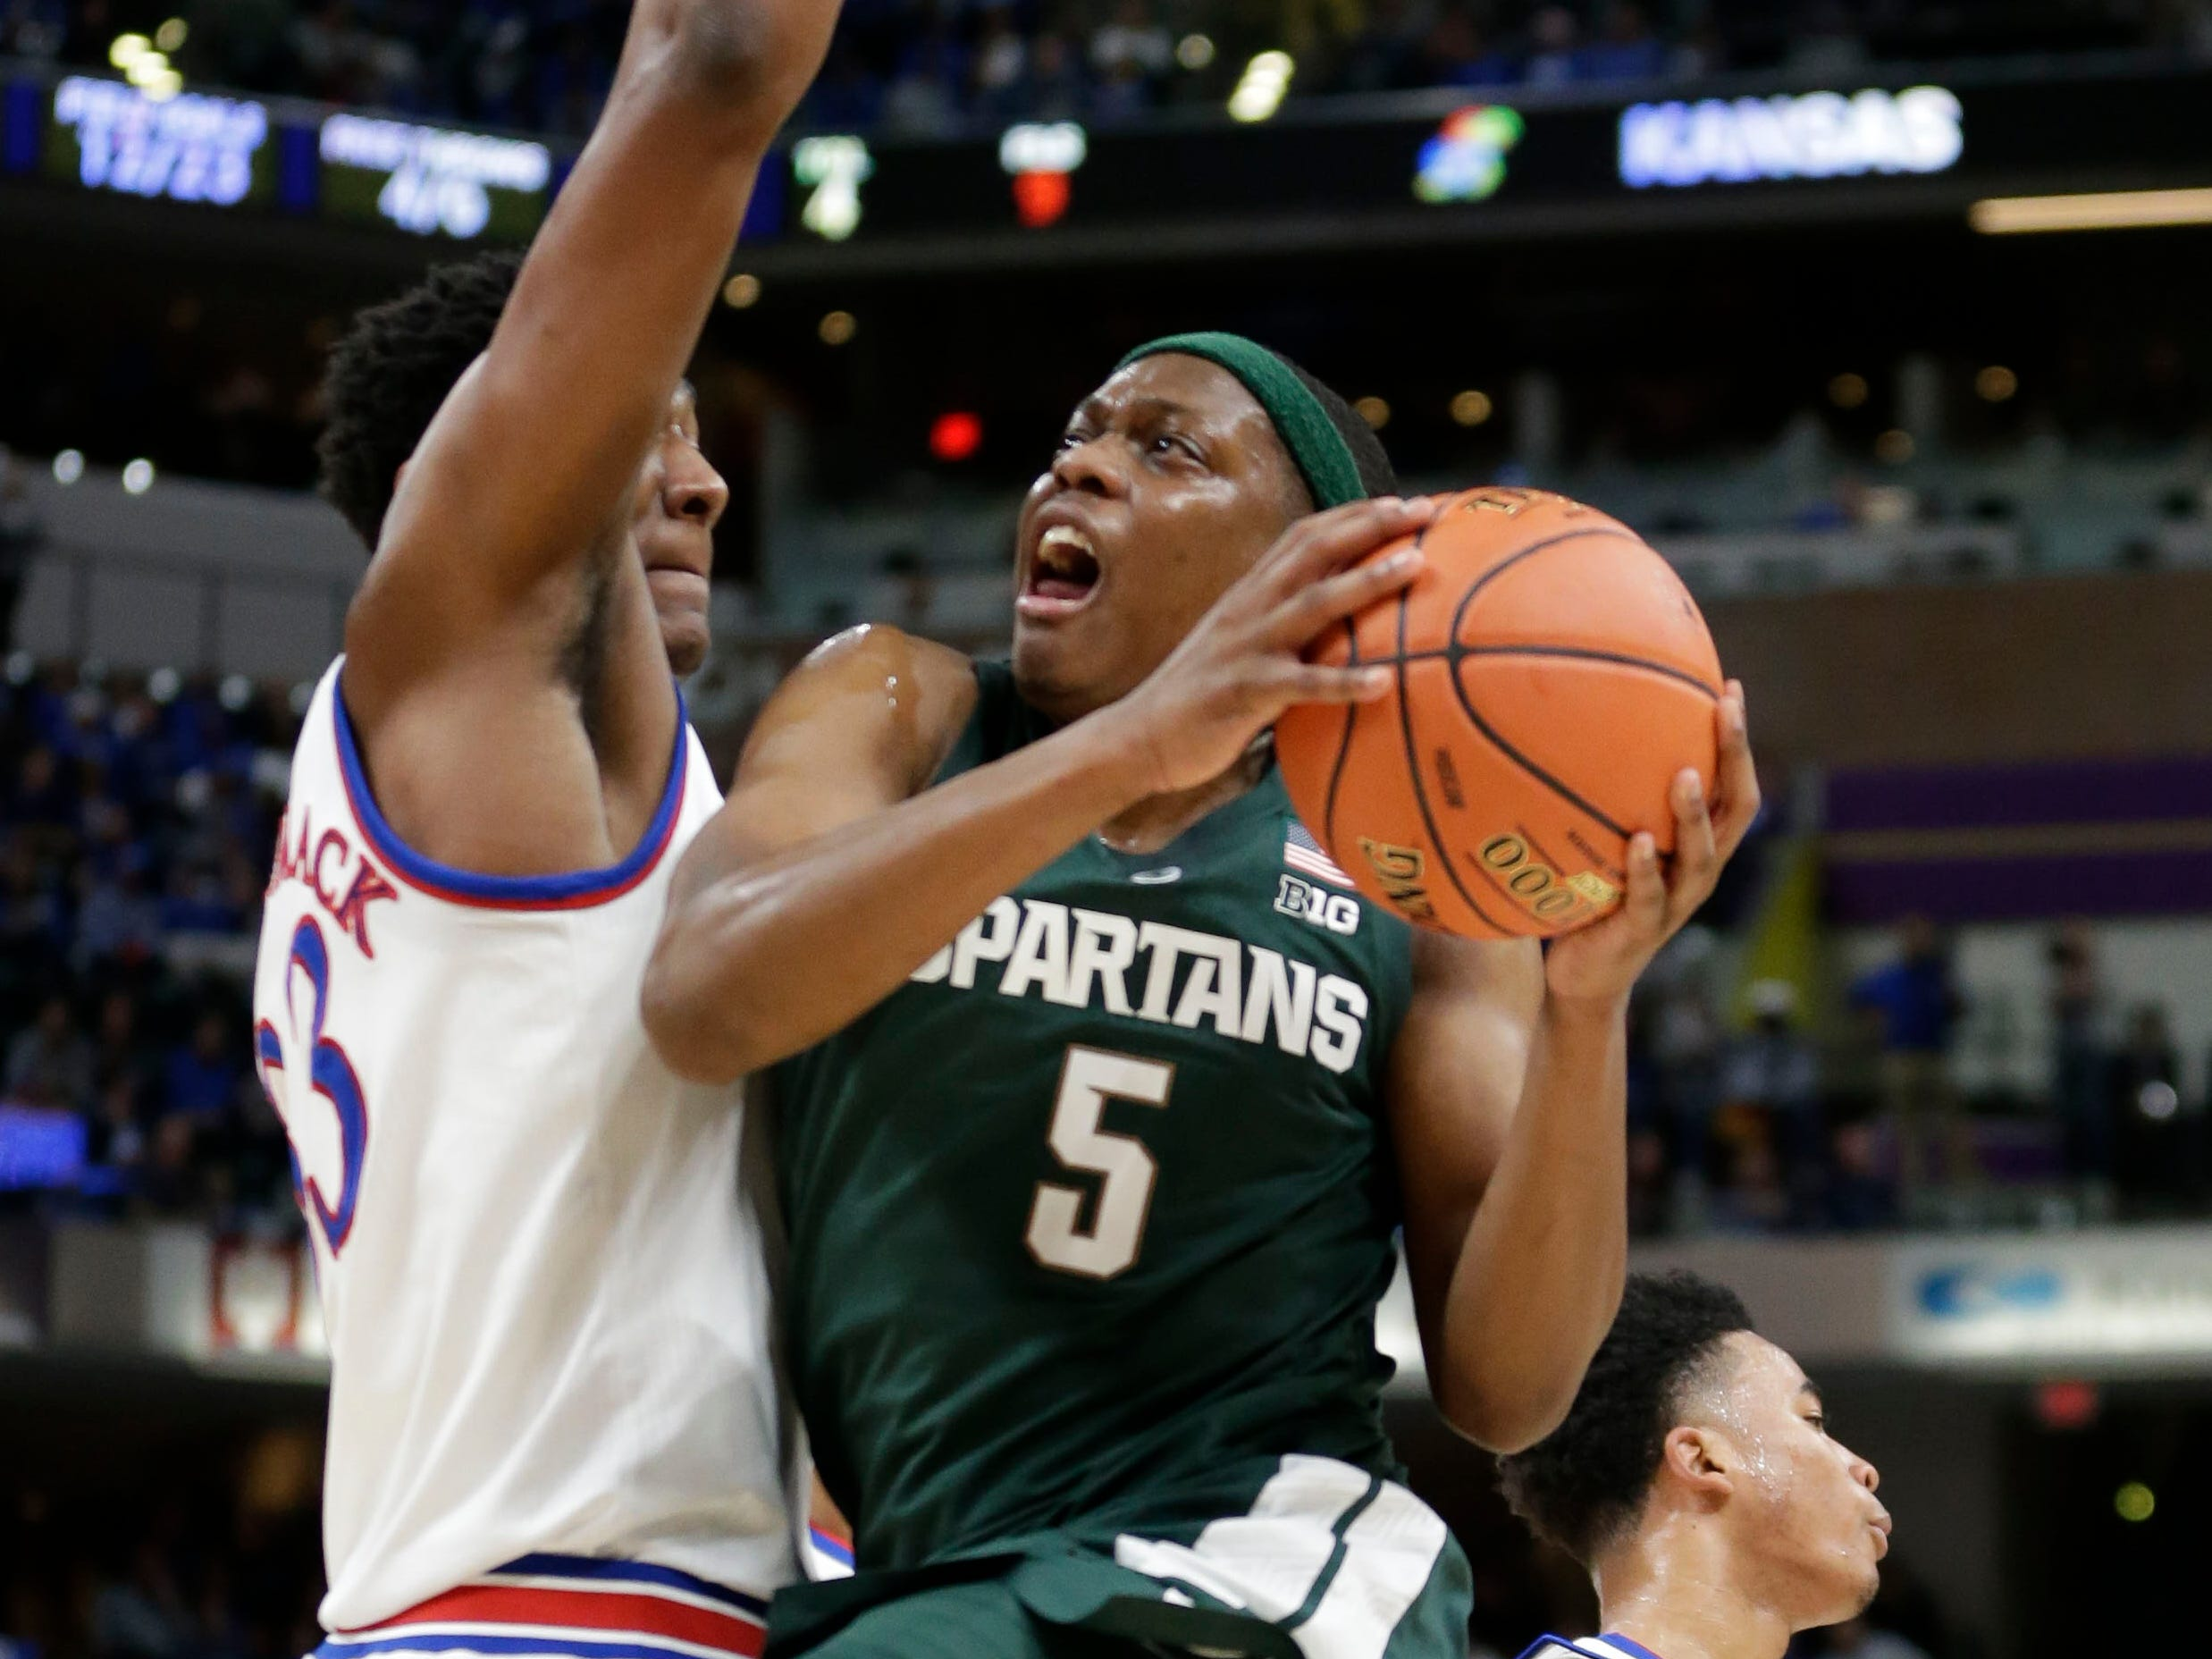 Michigan State guard Cassius Winston tries to shoot around Kansas forward David McCormack in the first half at the Champions Classic in Indianapolis on Tuesday, Nov. 6, 2018.